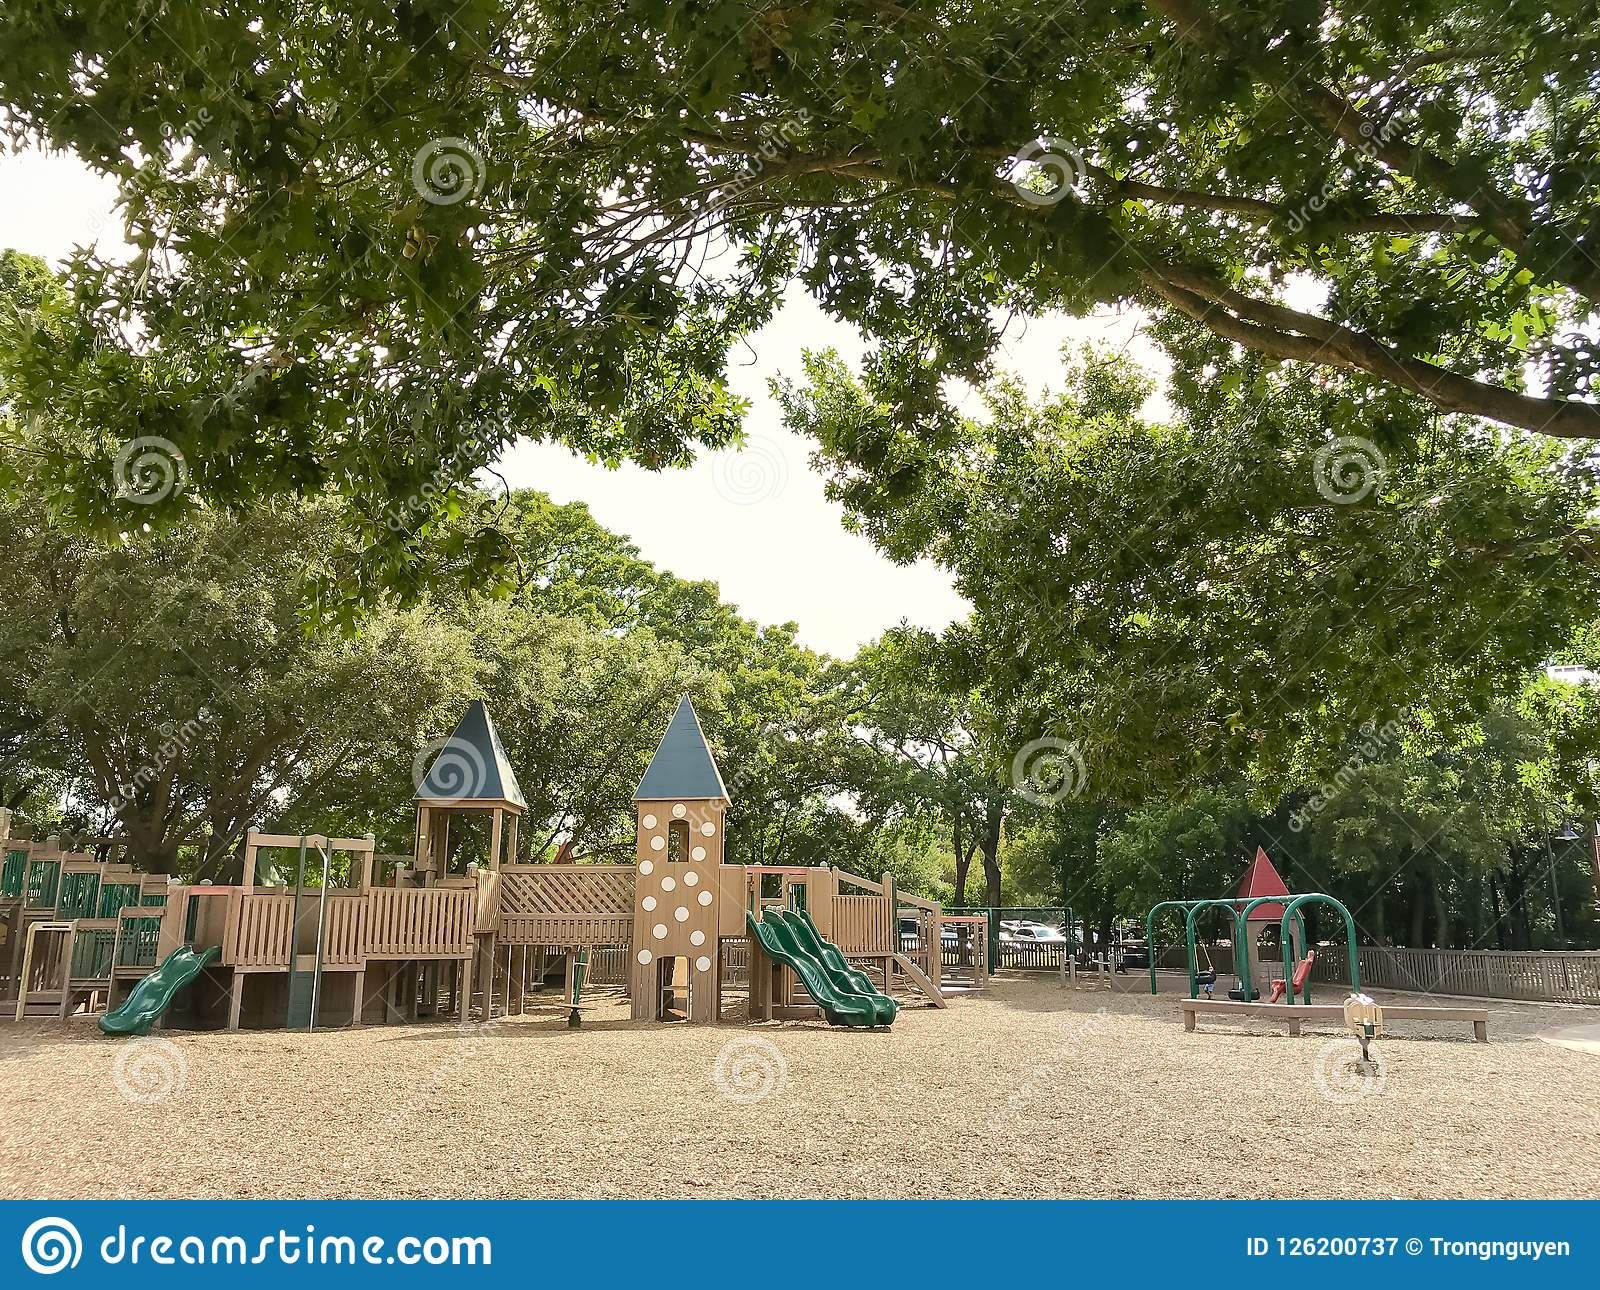 Public Wooden Castle Style Children Playground In Coppell Texas